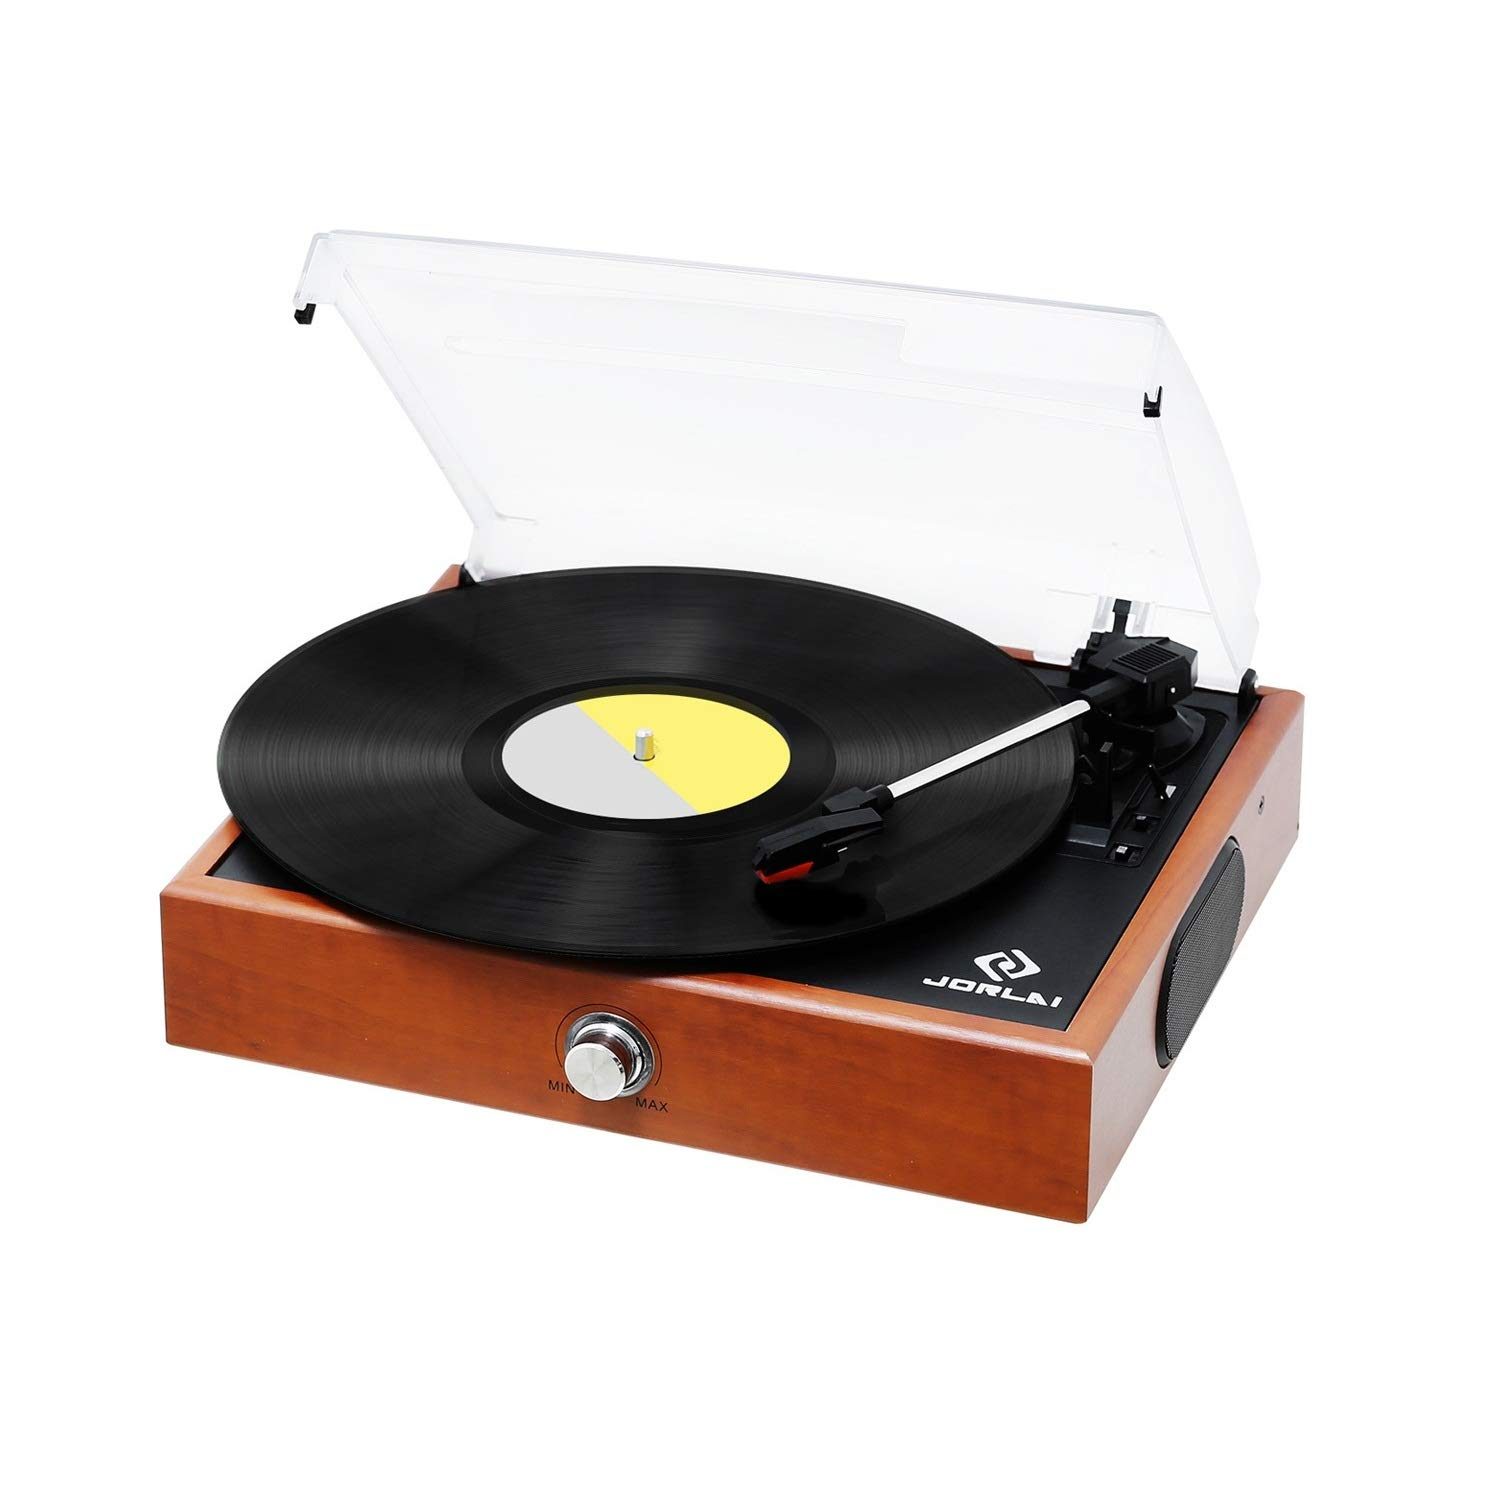 JORLAI Record Player, Turntable for Vinyl Records, 33 45 78 Record Player with Speakers, Vinyl to MP3 Recording, RCA Output, 3.5mm AUX Input, Volume Control - Wood